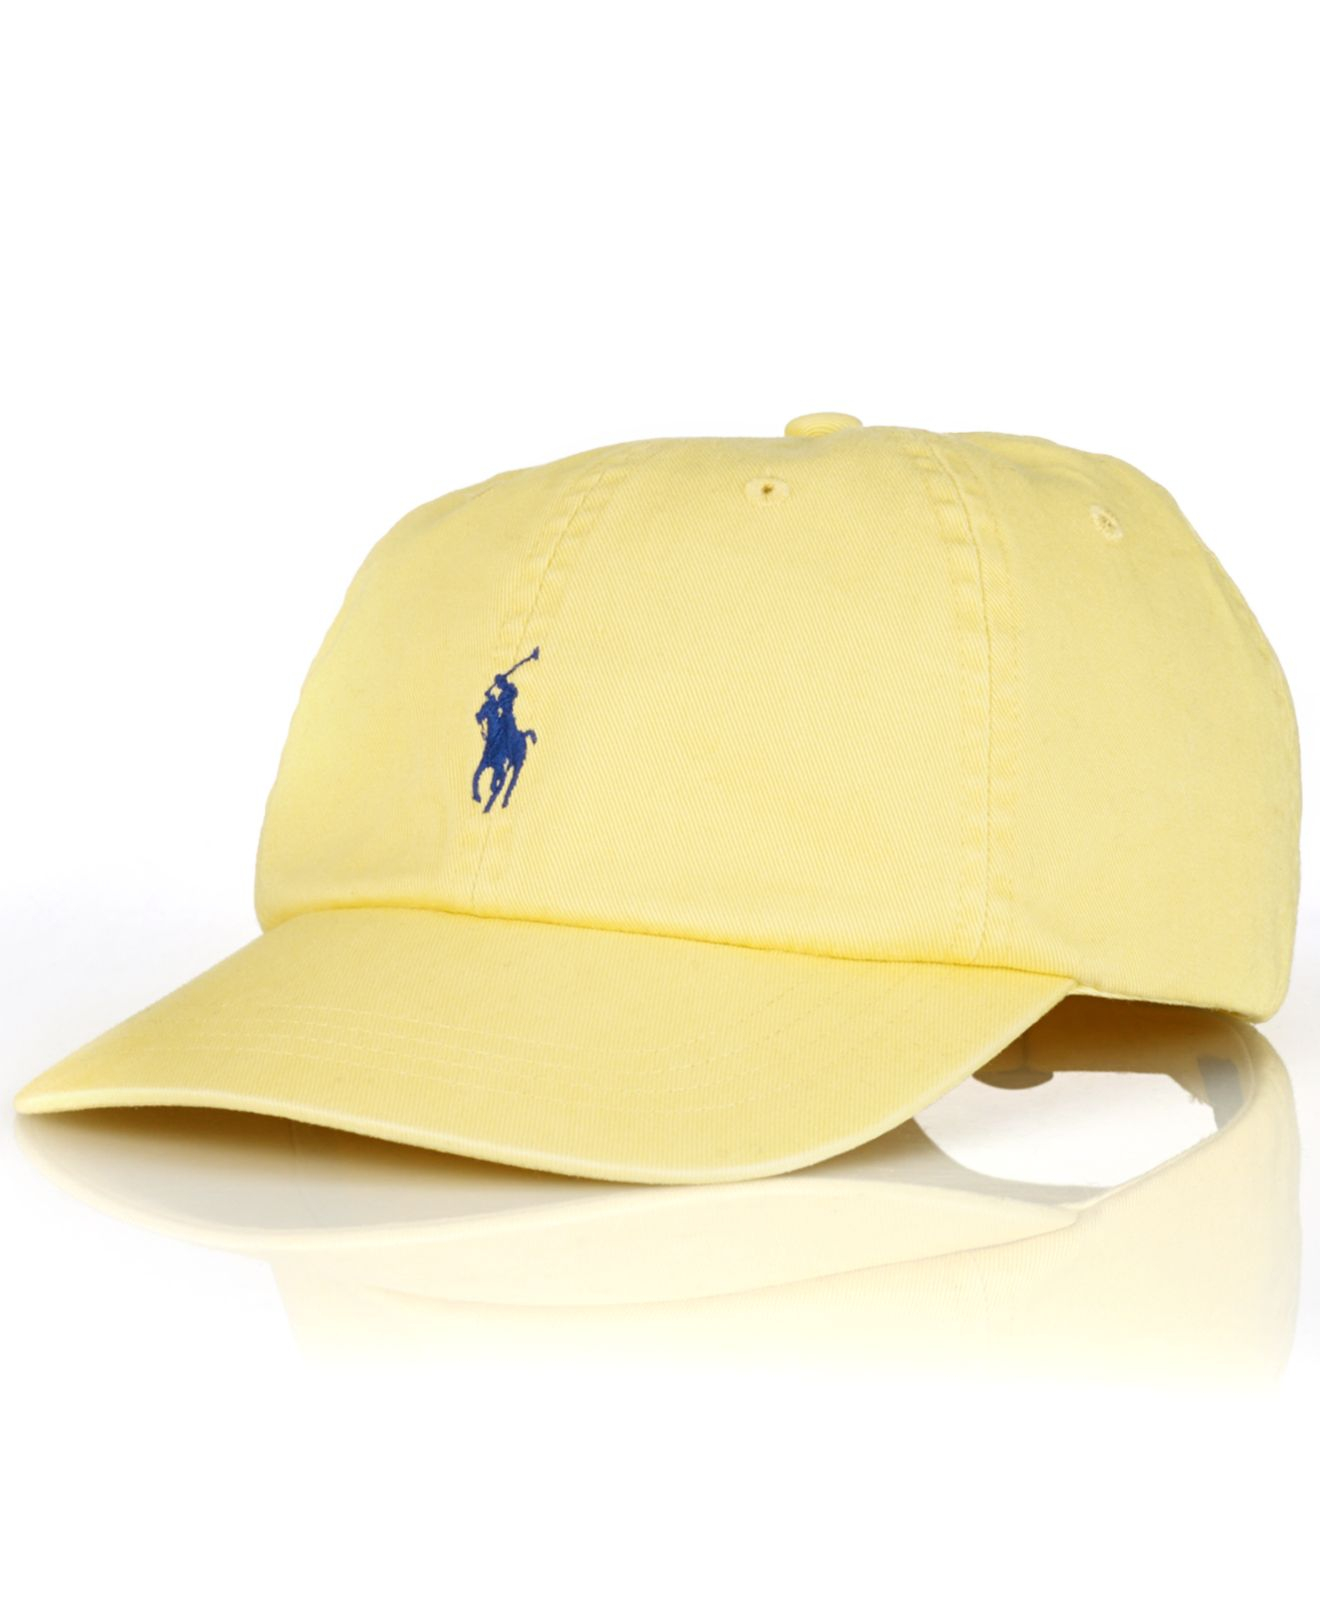 14a791b94d0 Lyst - Polo Ralph Lauren Classic Chino Sports Cap in Yellow for Men